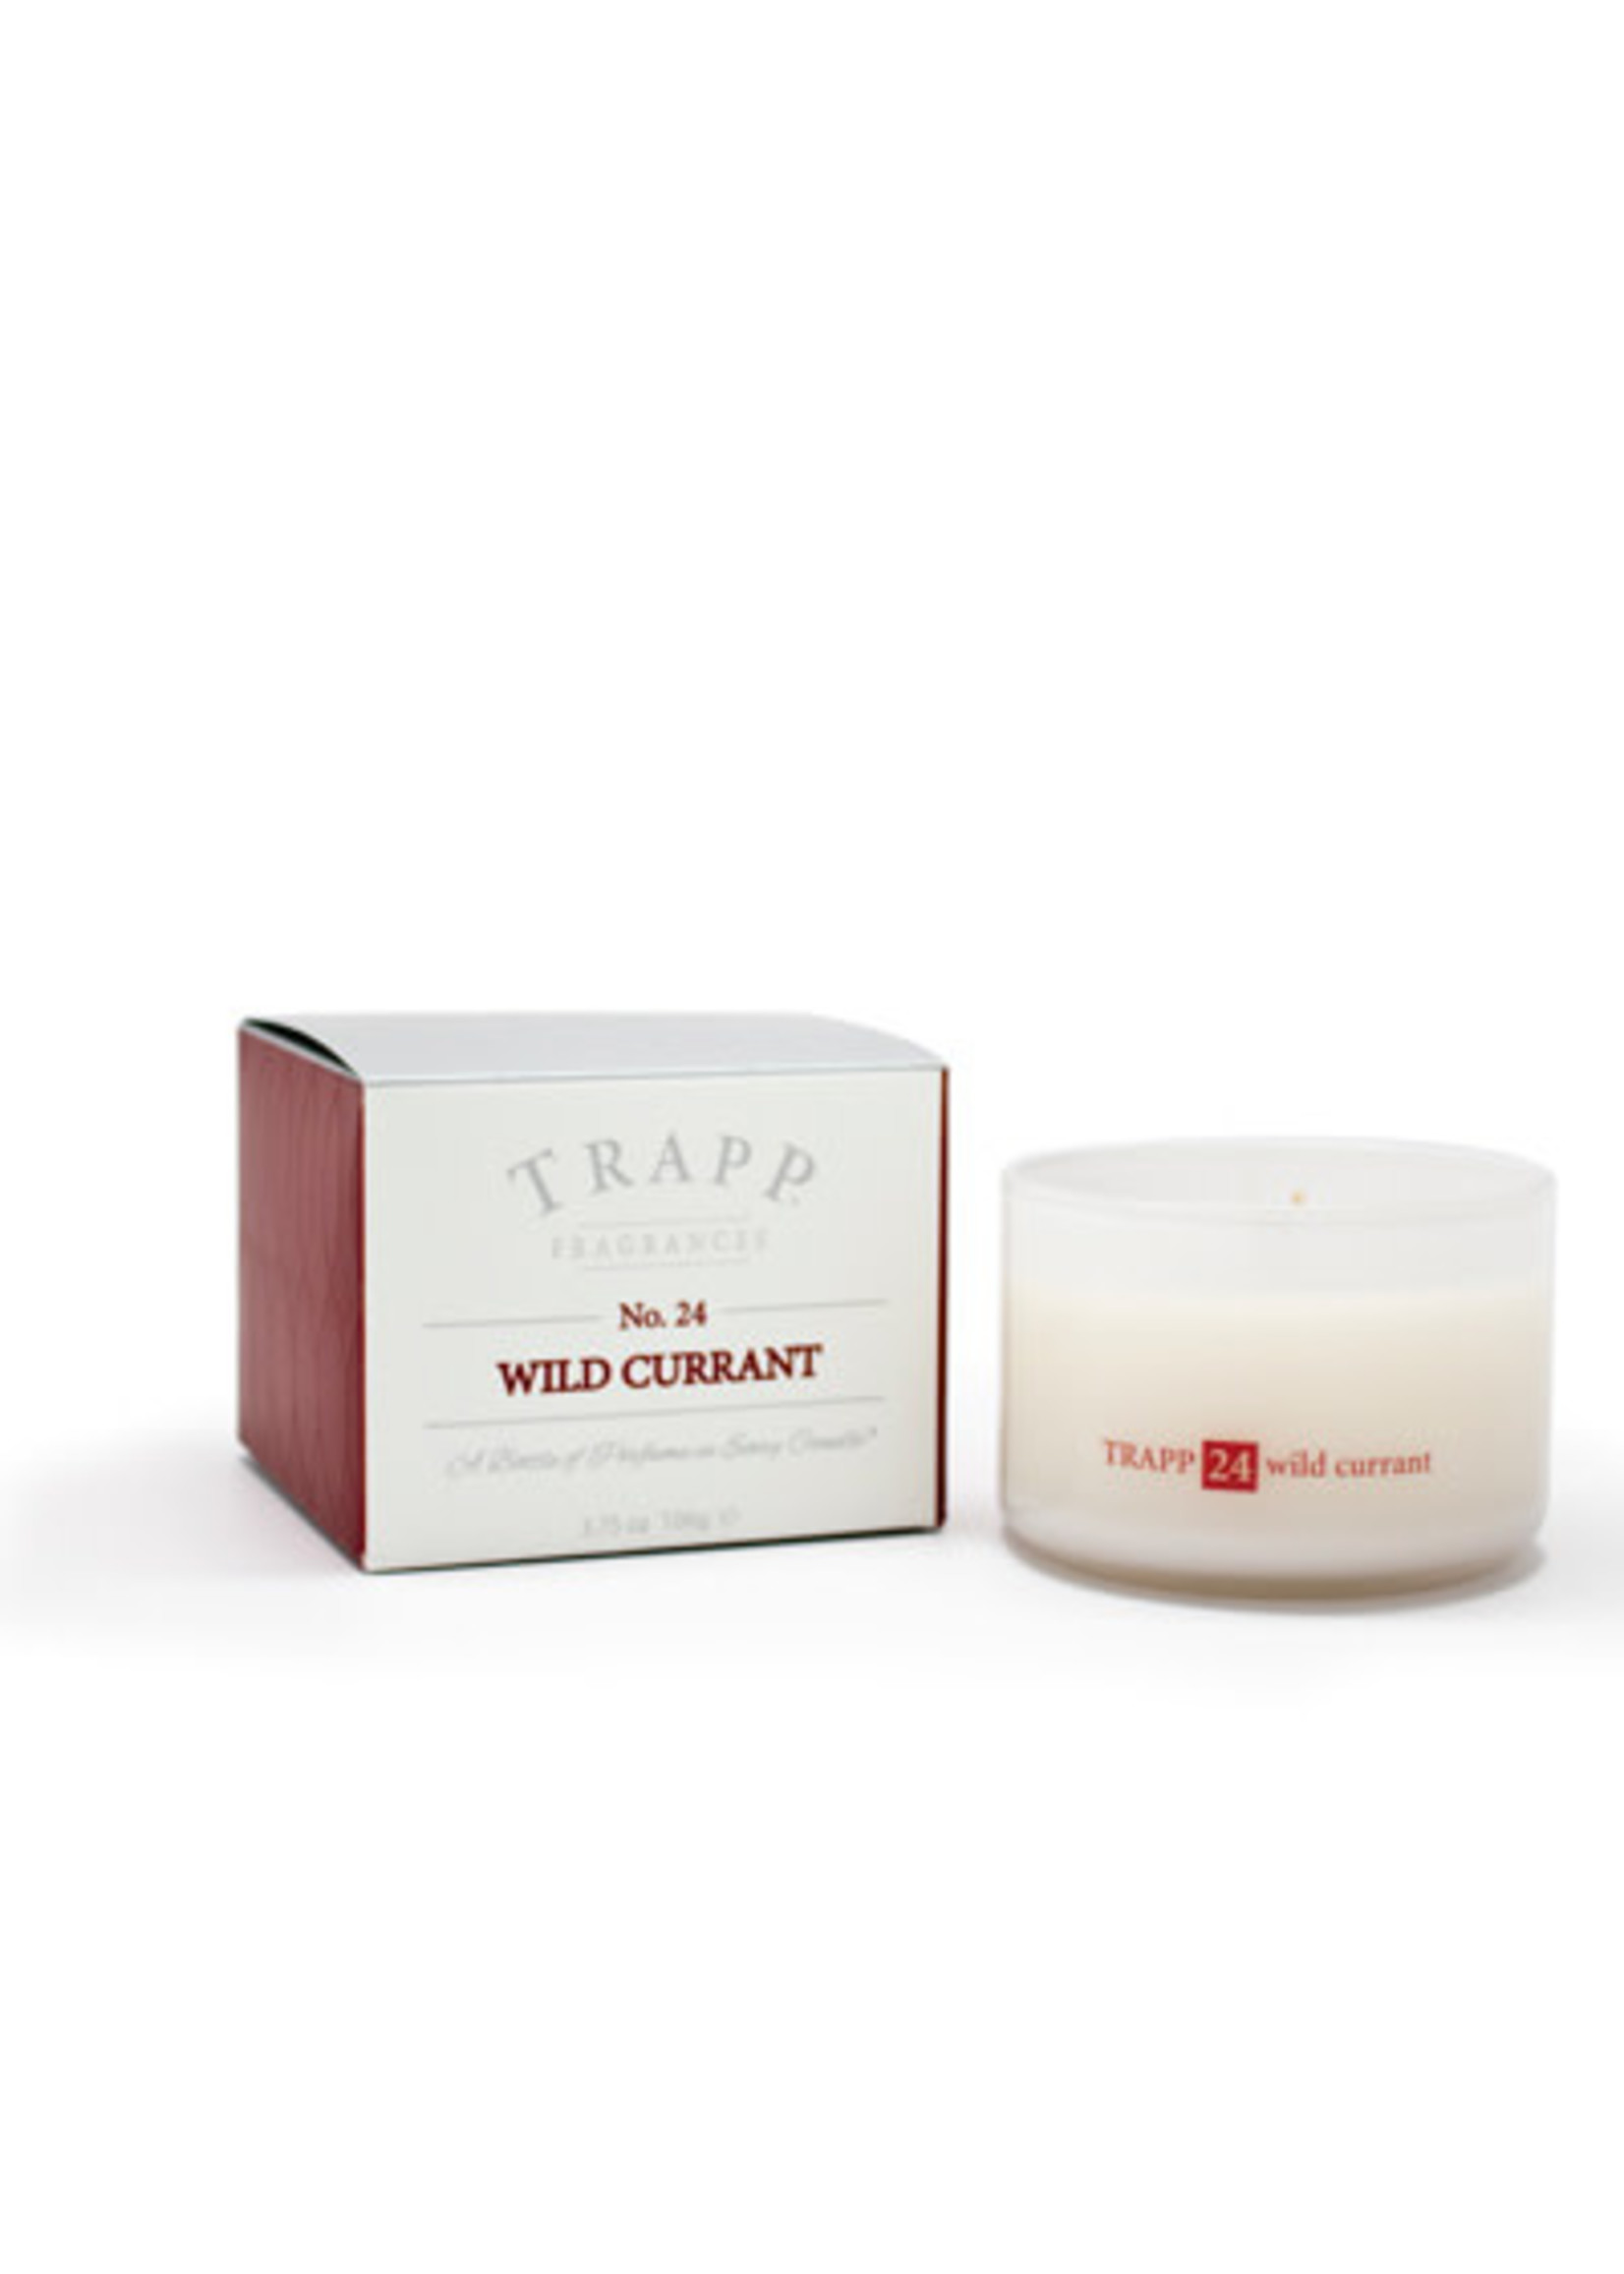 Trapp Candles Ambiance Collection - No. 24 Wild Currant - 3.75 oz. Poured Candle